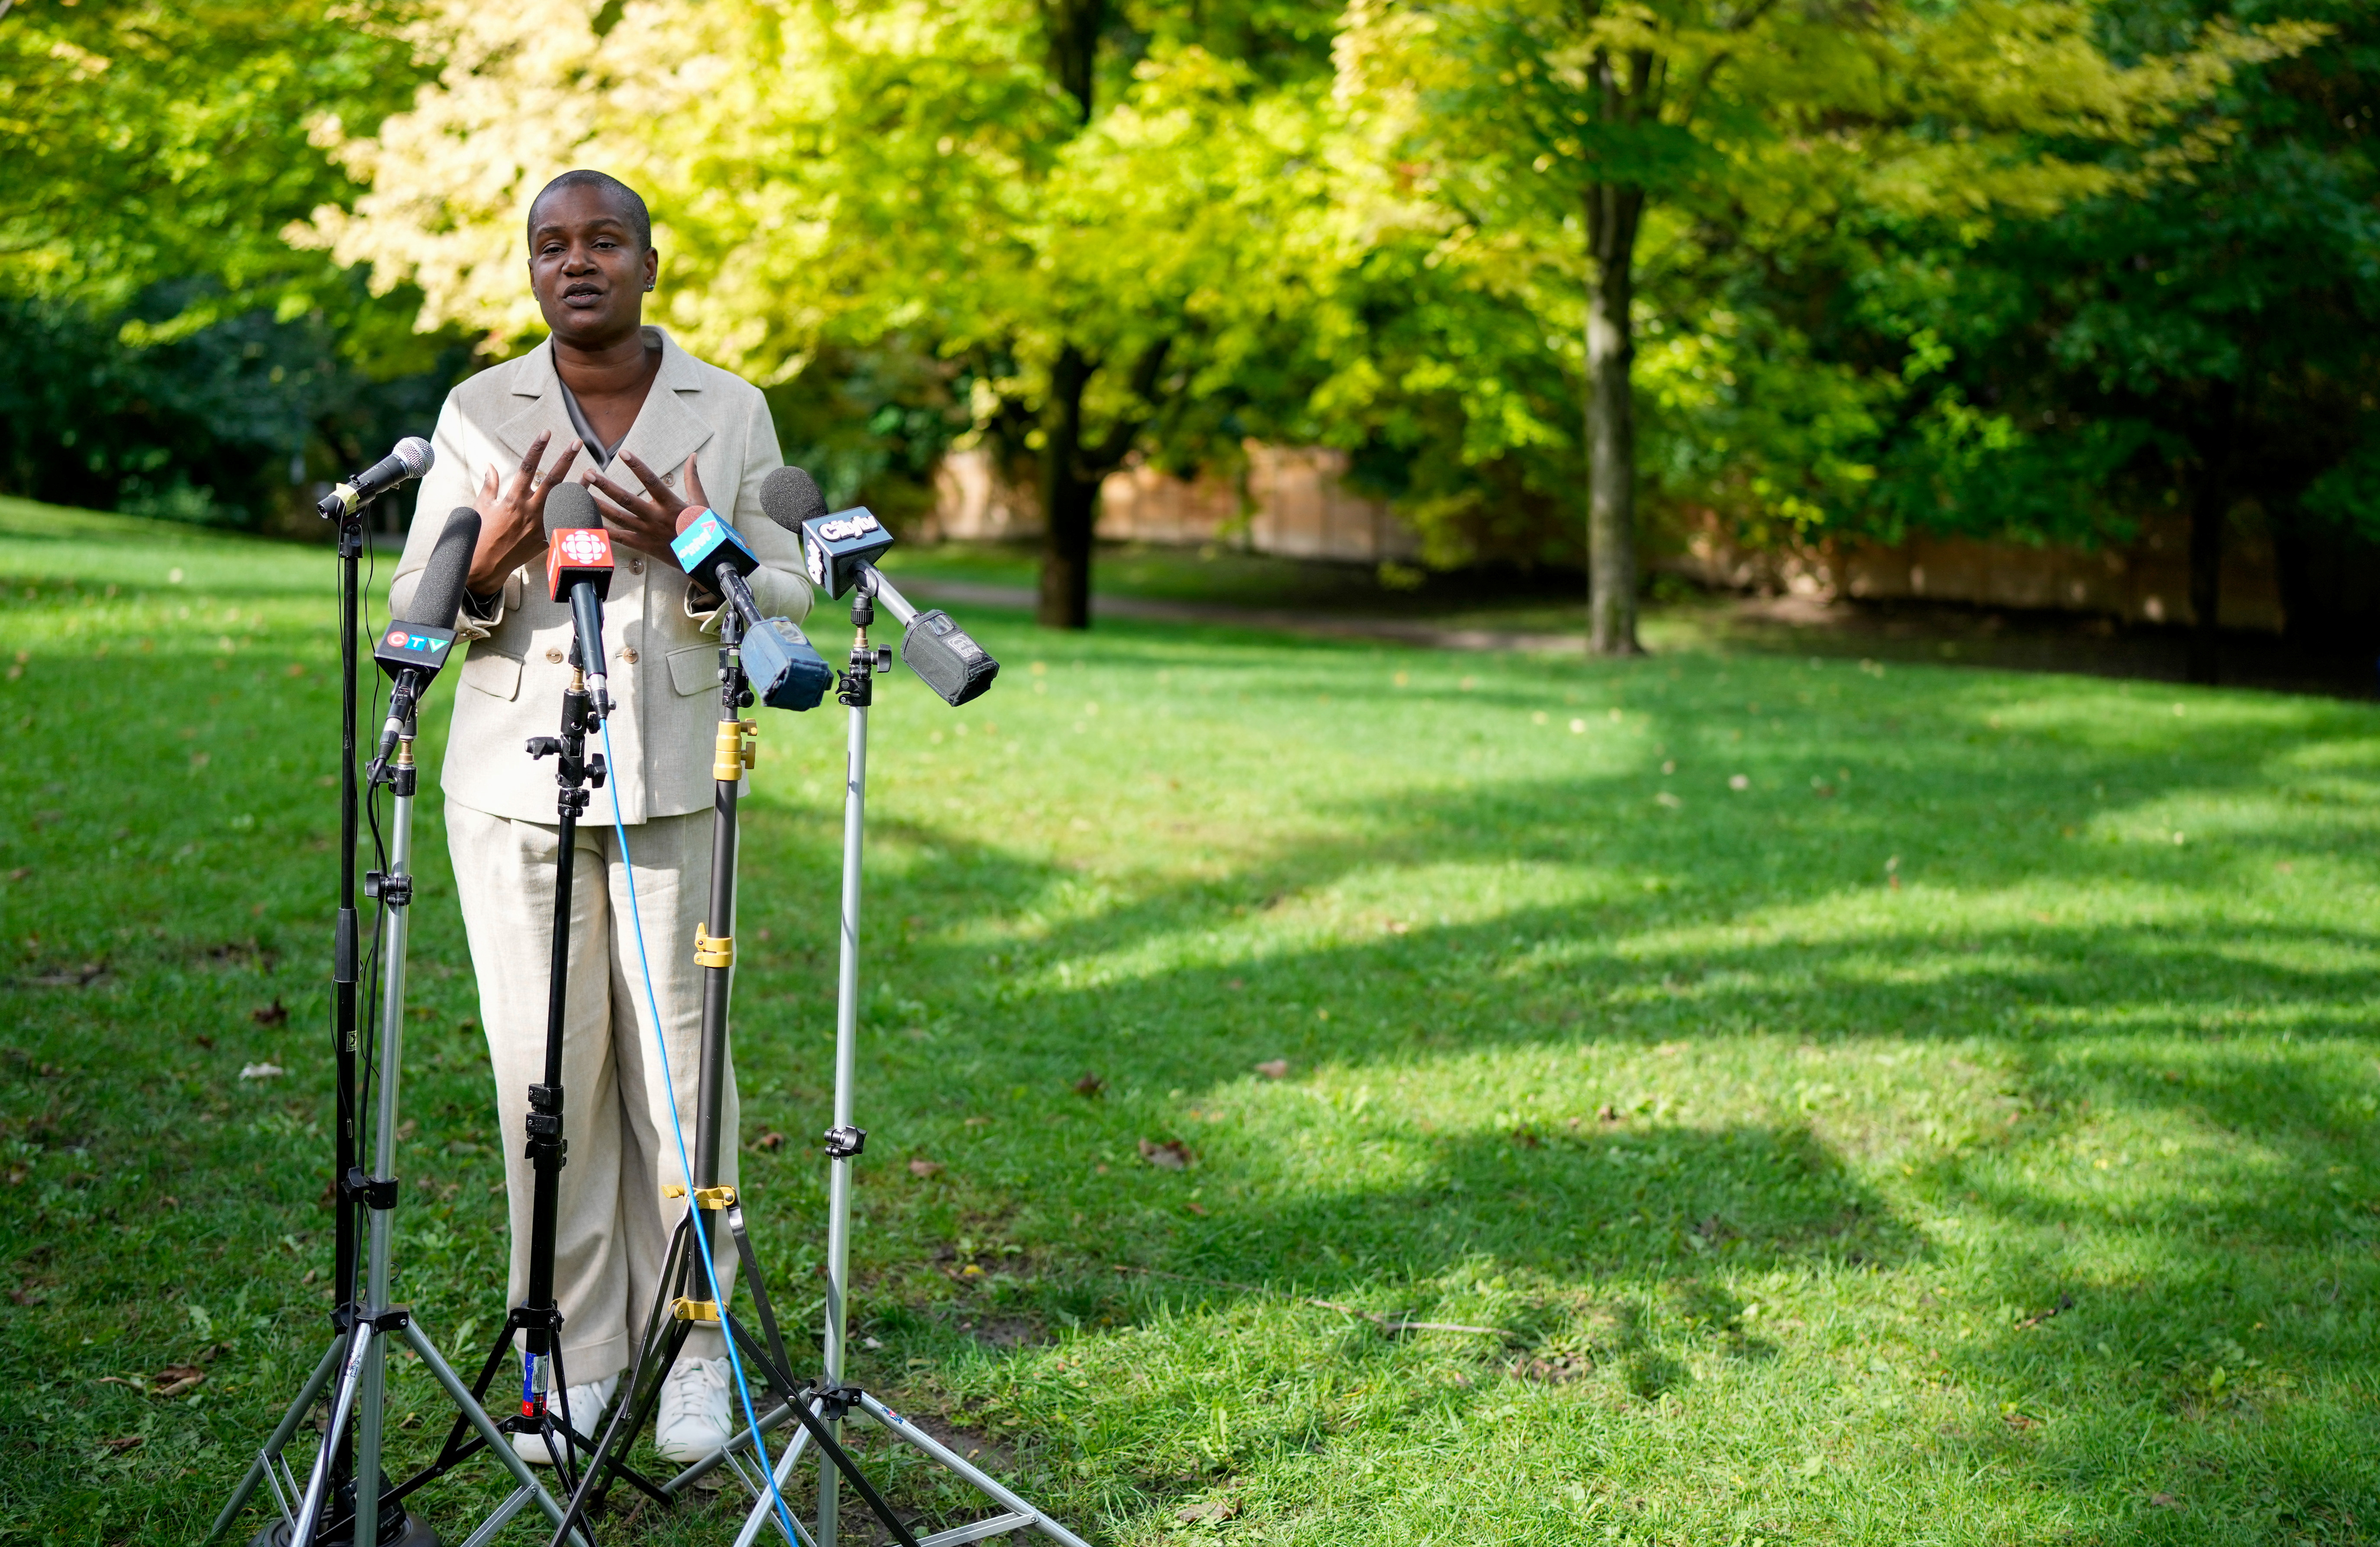 Green Party leader Annamie Paul makes an announcement following the federal election, at a park in Toronto, Ontario, Canada,  September 27, 2021.  REUTERS/Chris Helgren